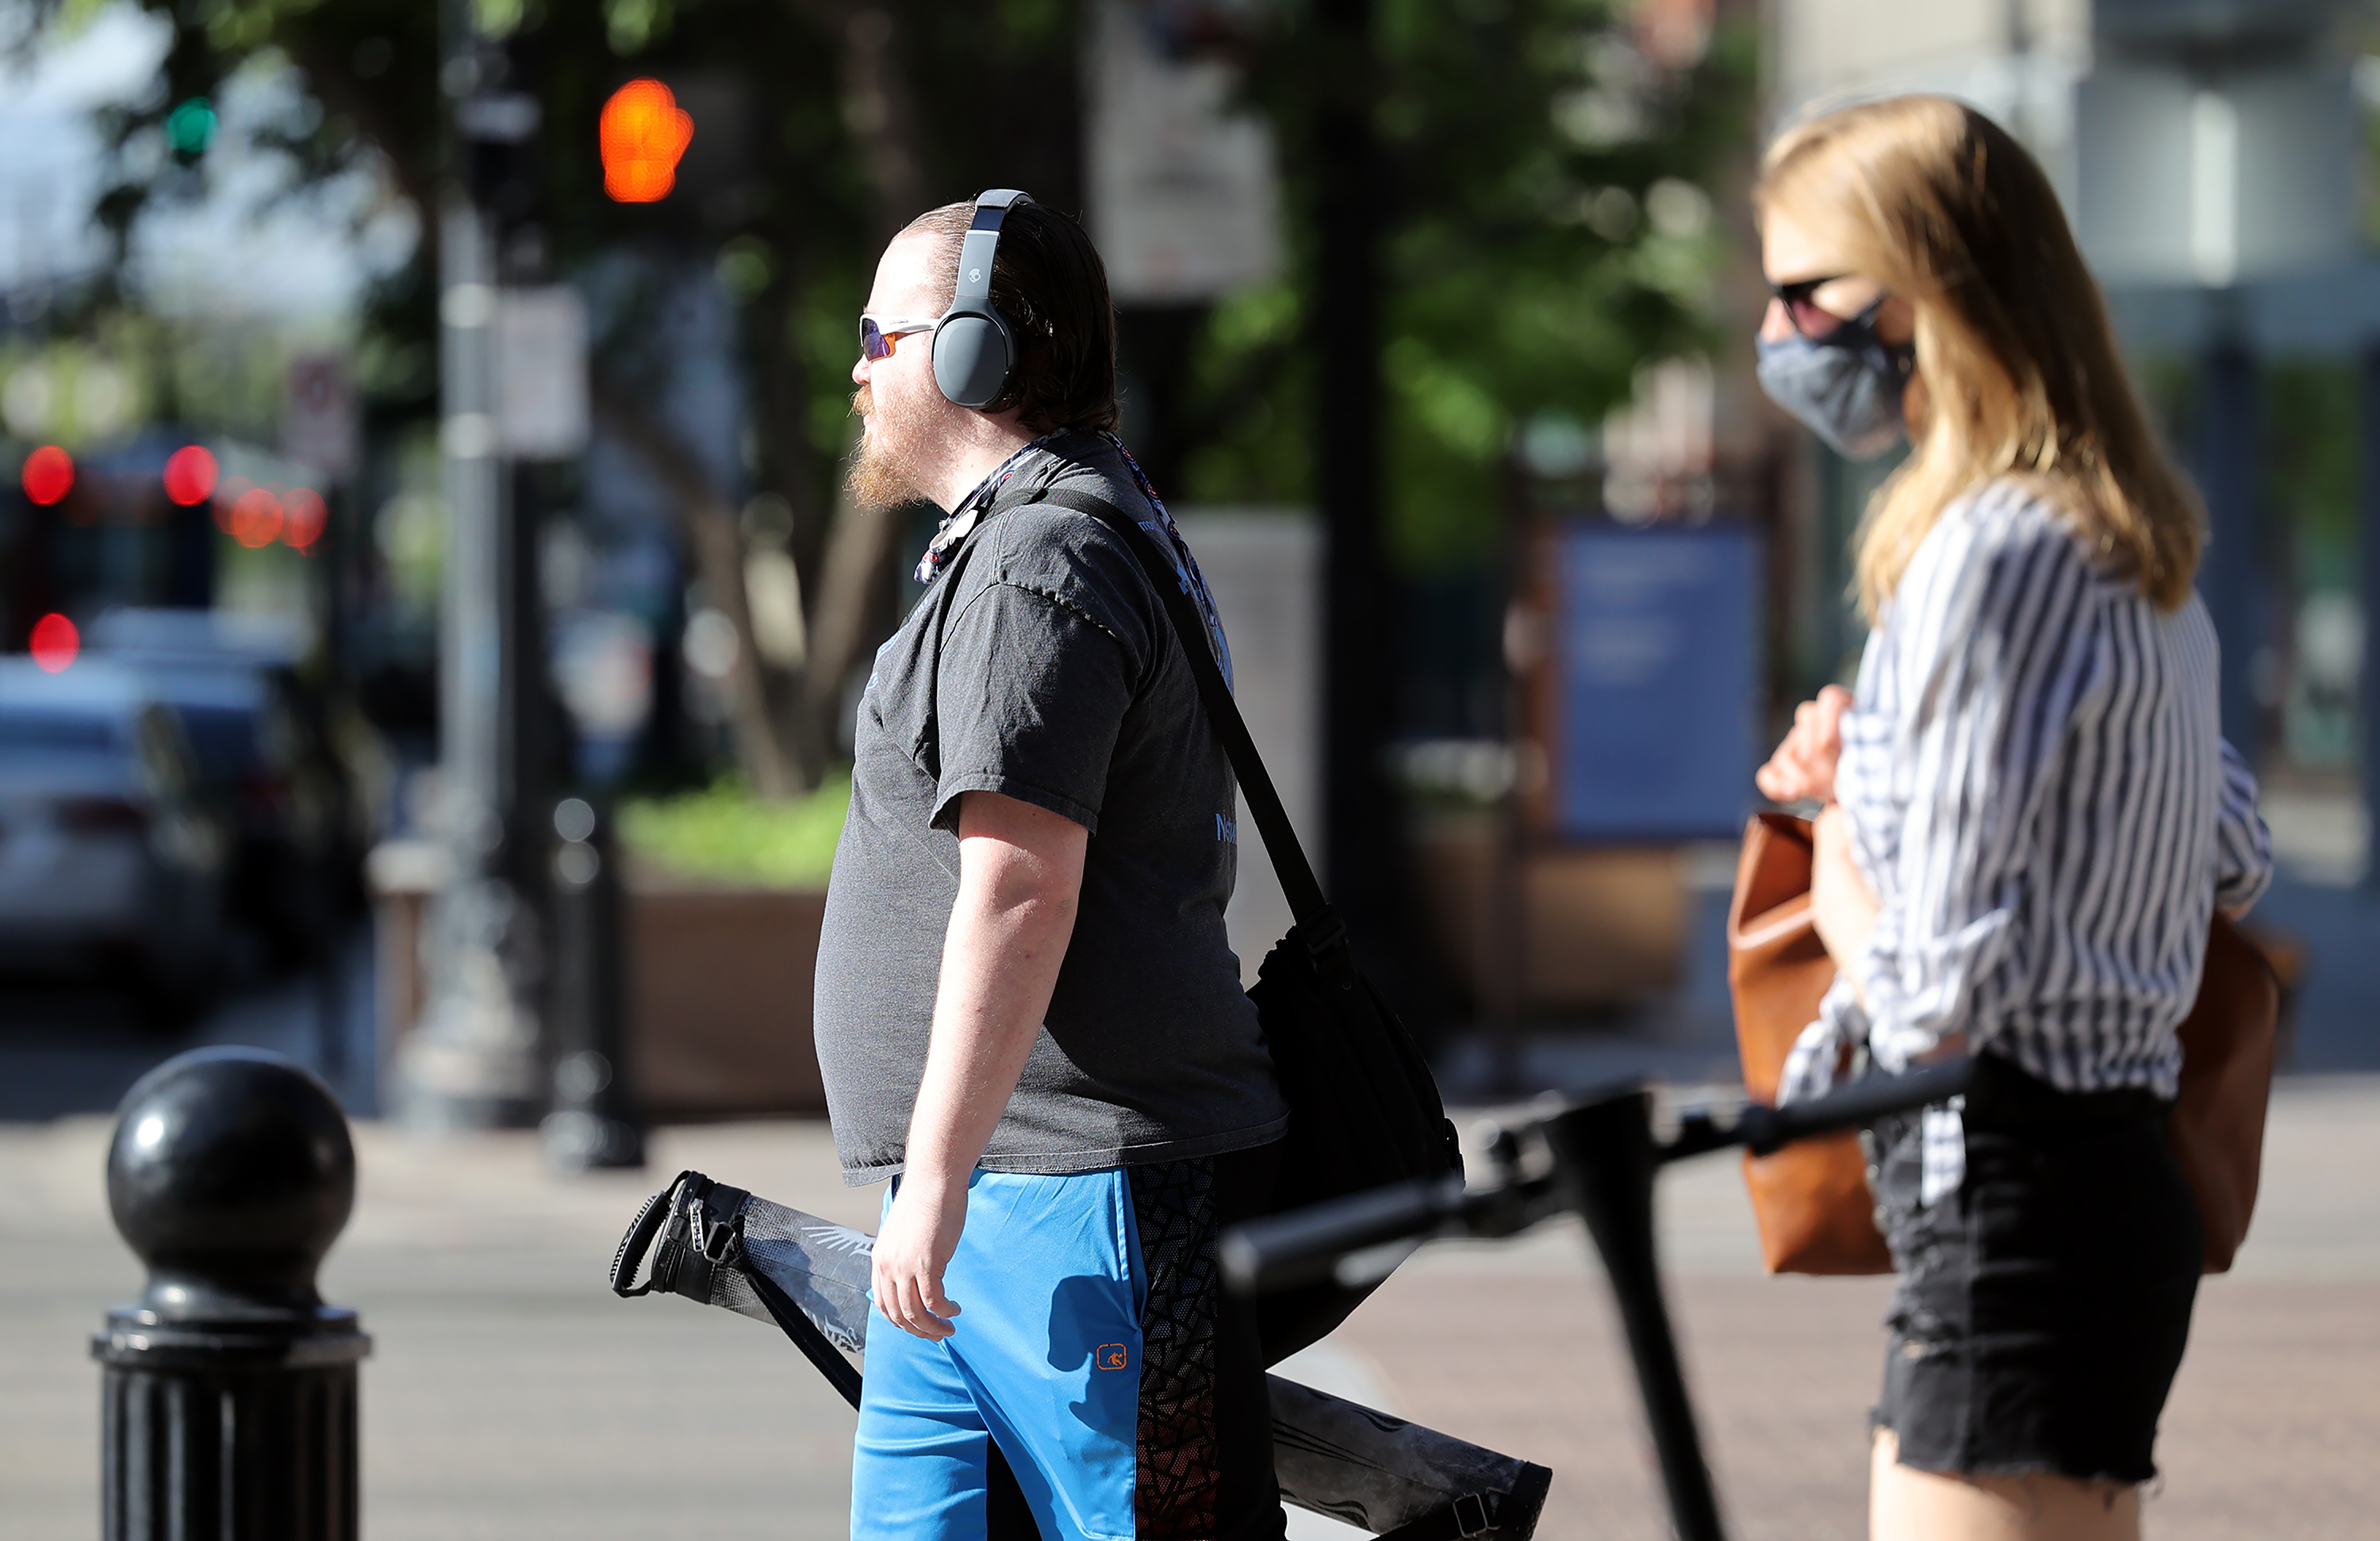 A maskless pedestrian and a pedestrian wearing a mask walk in Salt Lake City on Friday, May 14, 2021.